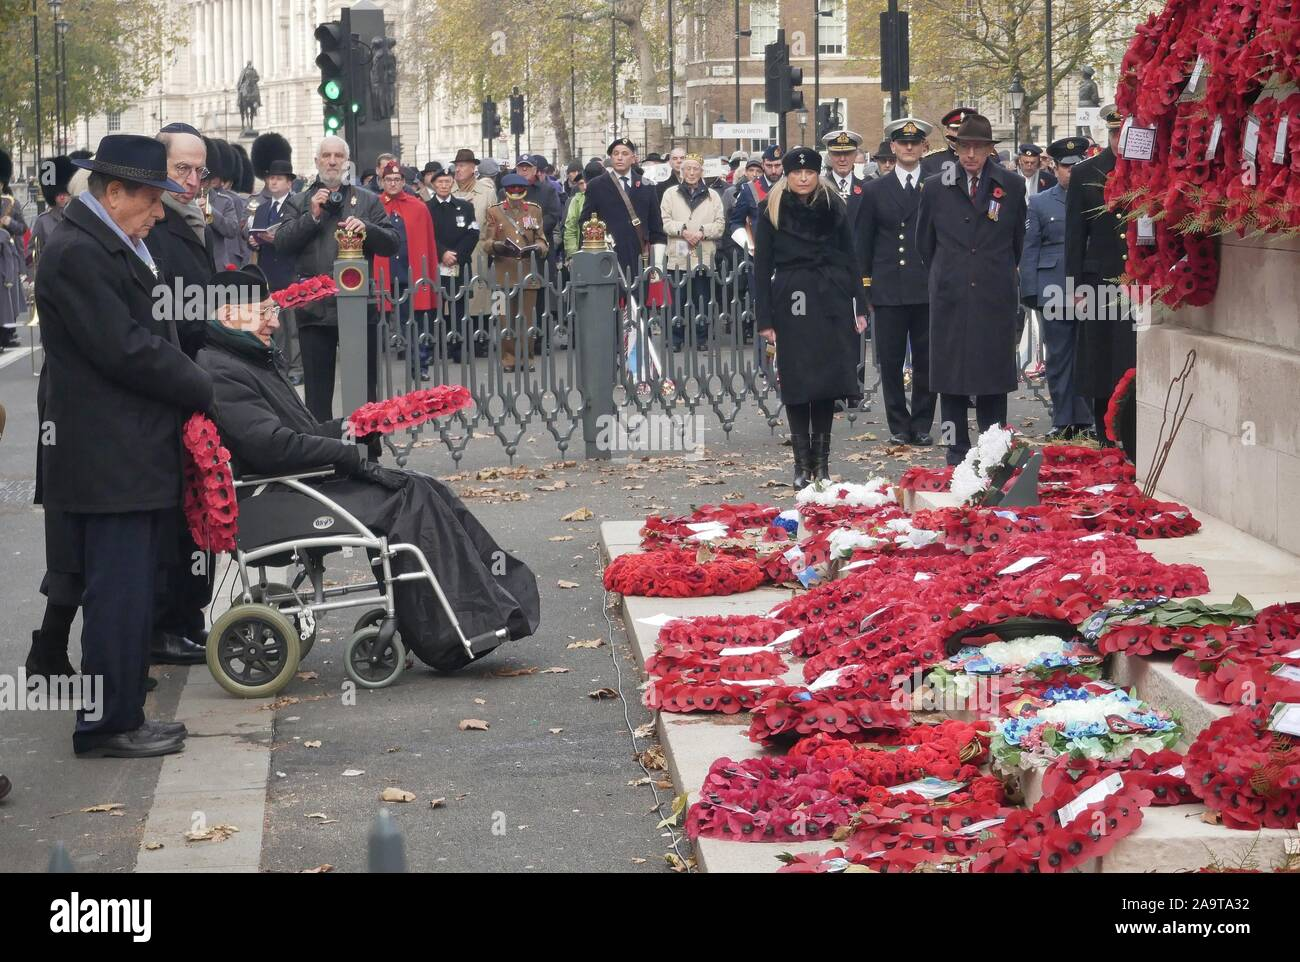 London, UK. 17th Nov, 2019. Sir Malcolm Rifkind, The Chief Rabbi Ephraim Mirvis and The Right Worshipful Lord Mayor of Westminster - Councillor Ruth Bush, attend the annual AJEX (The Association of Jewish Ex-Servicemen and Women) Remembrance Ceremony & Parade in Whitehall, London. Credit: Brian Minkoff/Alamy Live News Stock Photo